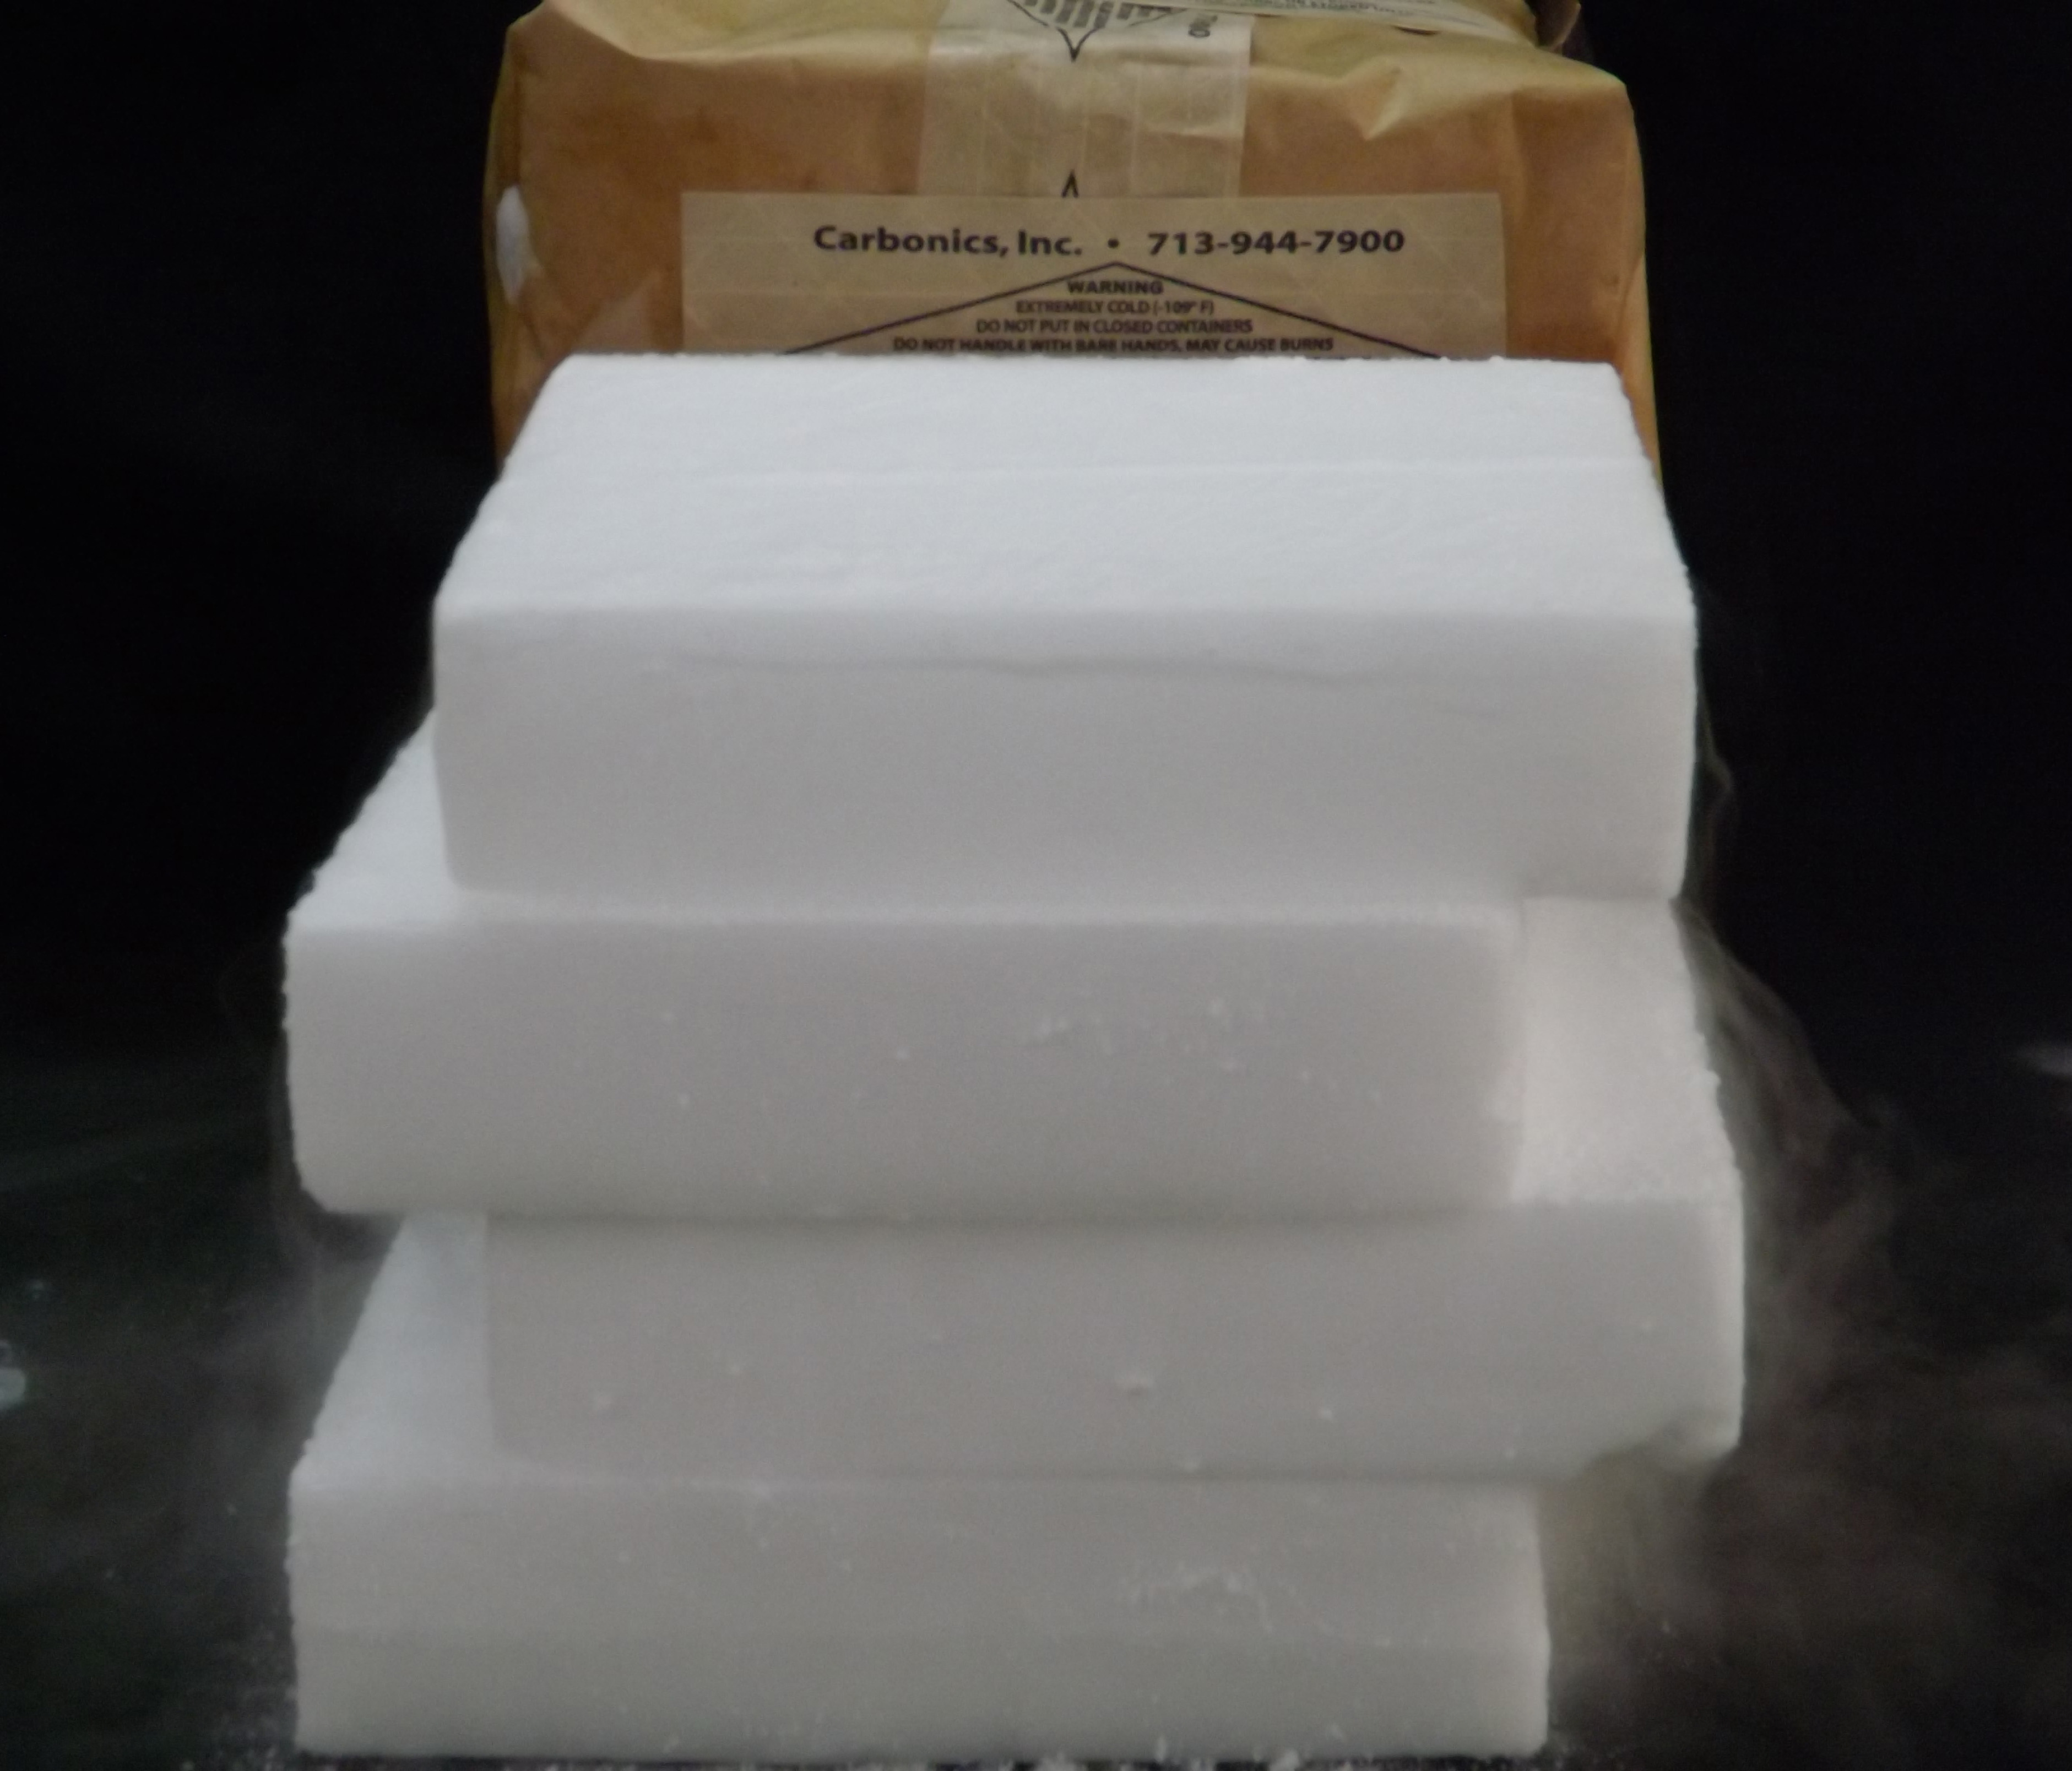 Carbonics Dry Ice Slices packaged and ready to ship Houston, TX